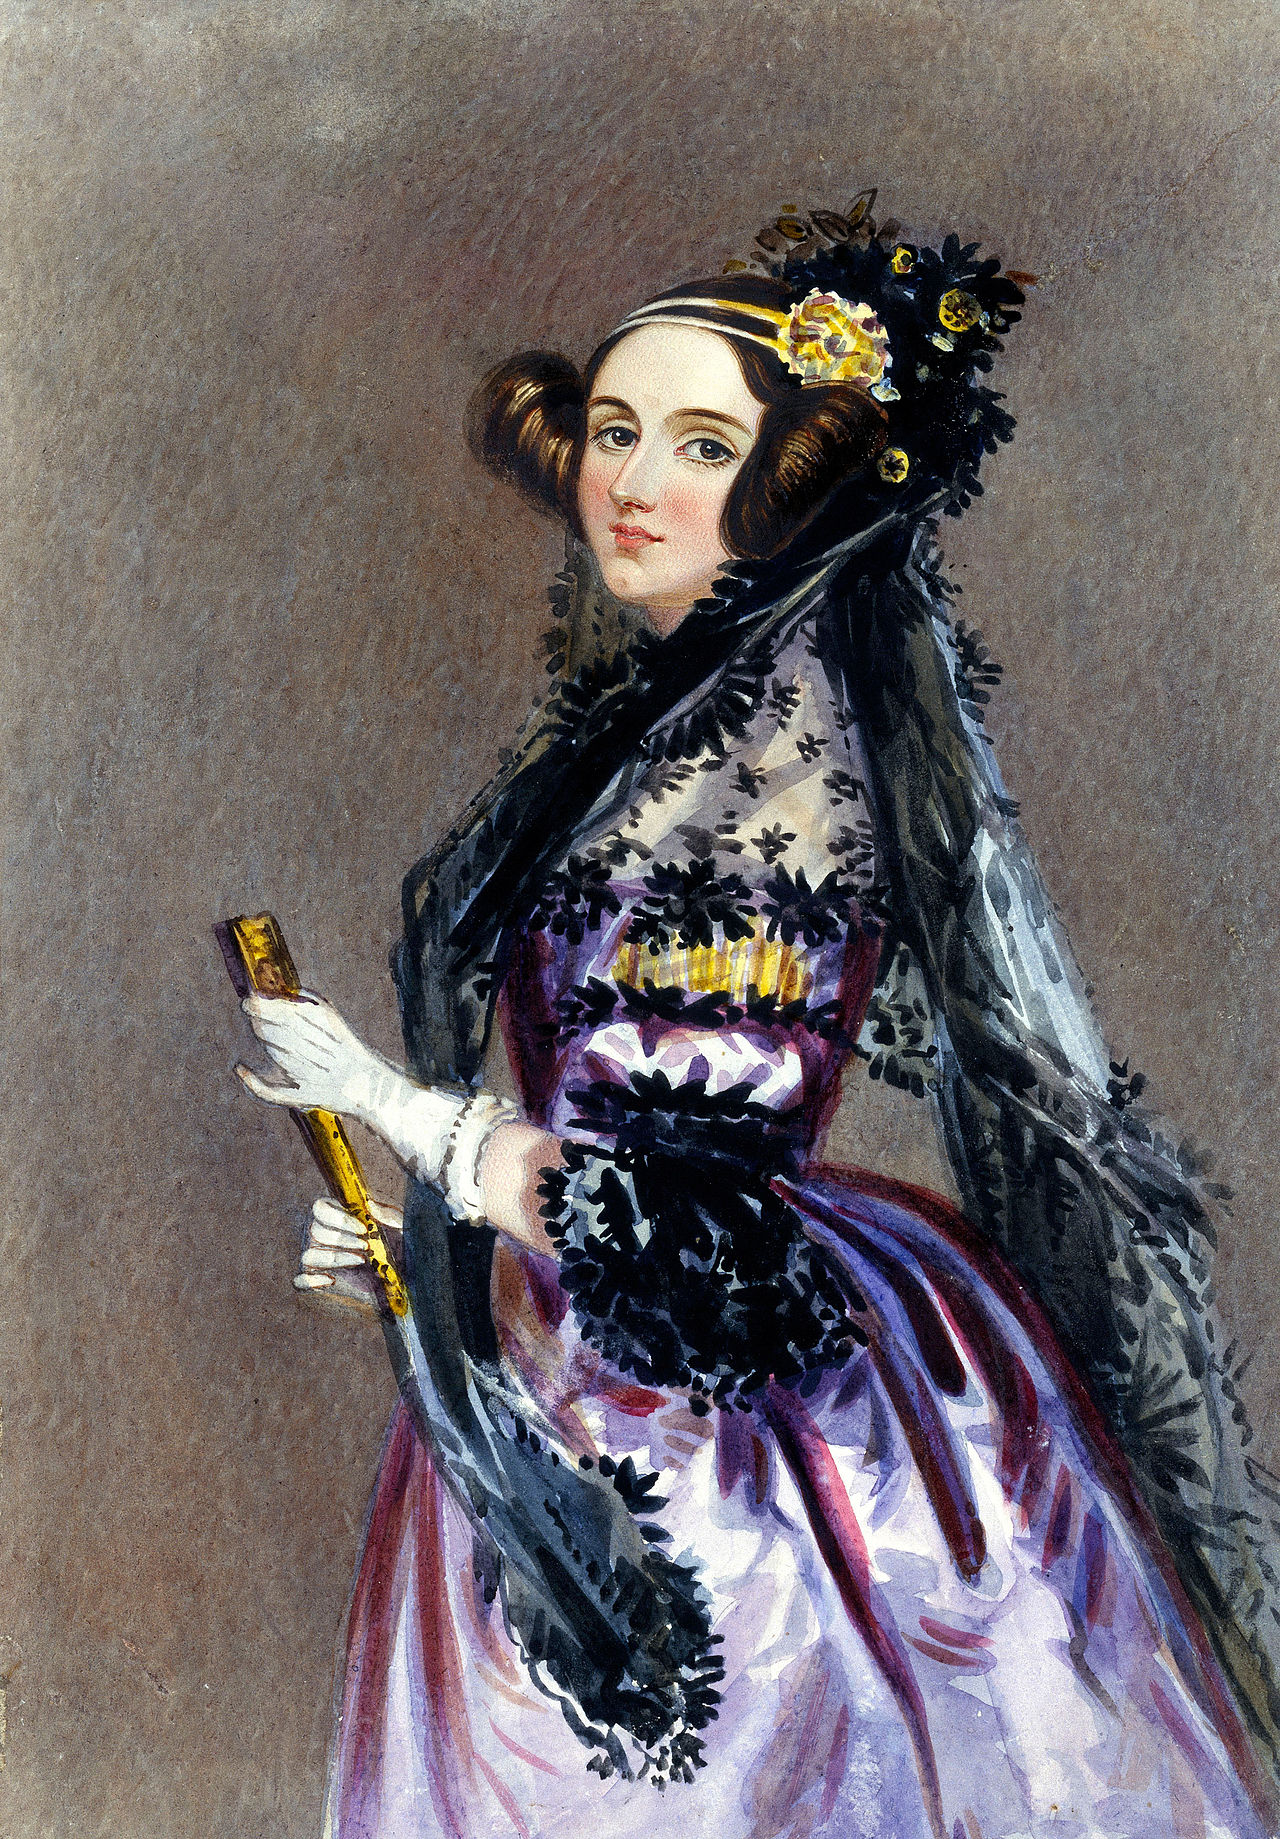 Ada_Lovelace_portrait-countess-of-lovelace-circa-1840-by-alfred-edward-chalon.jpg